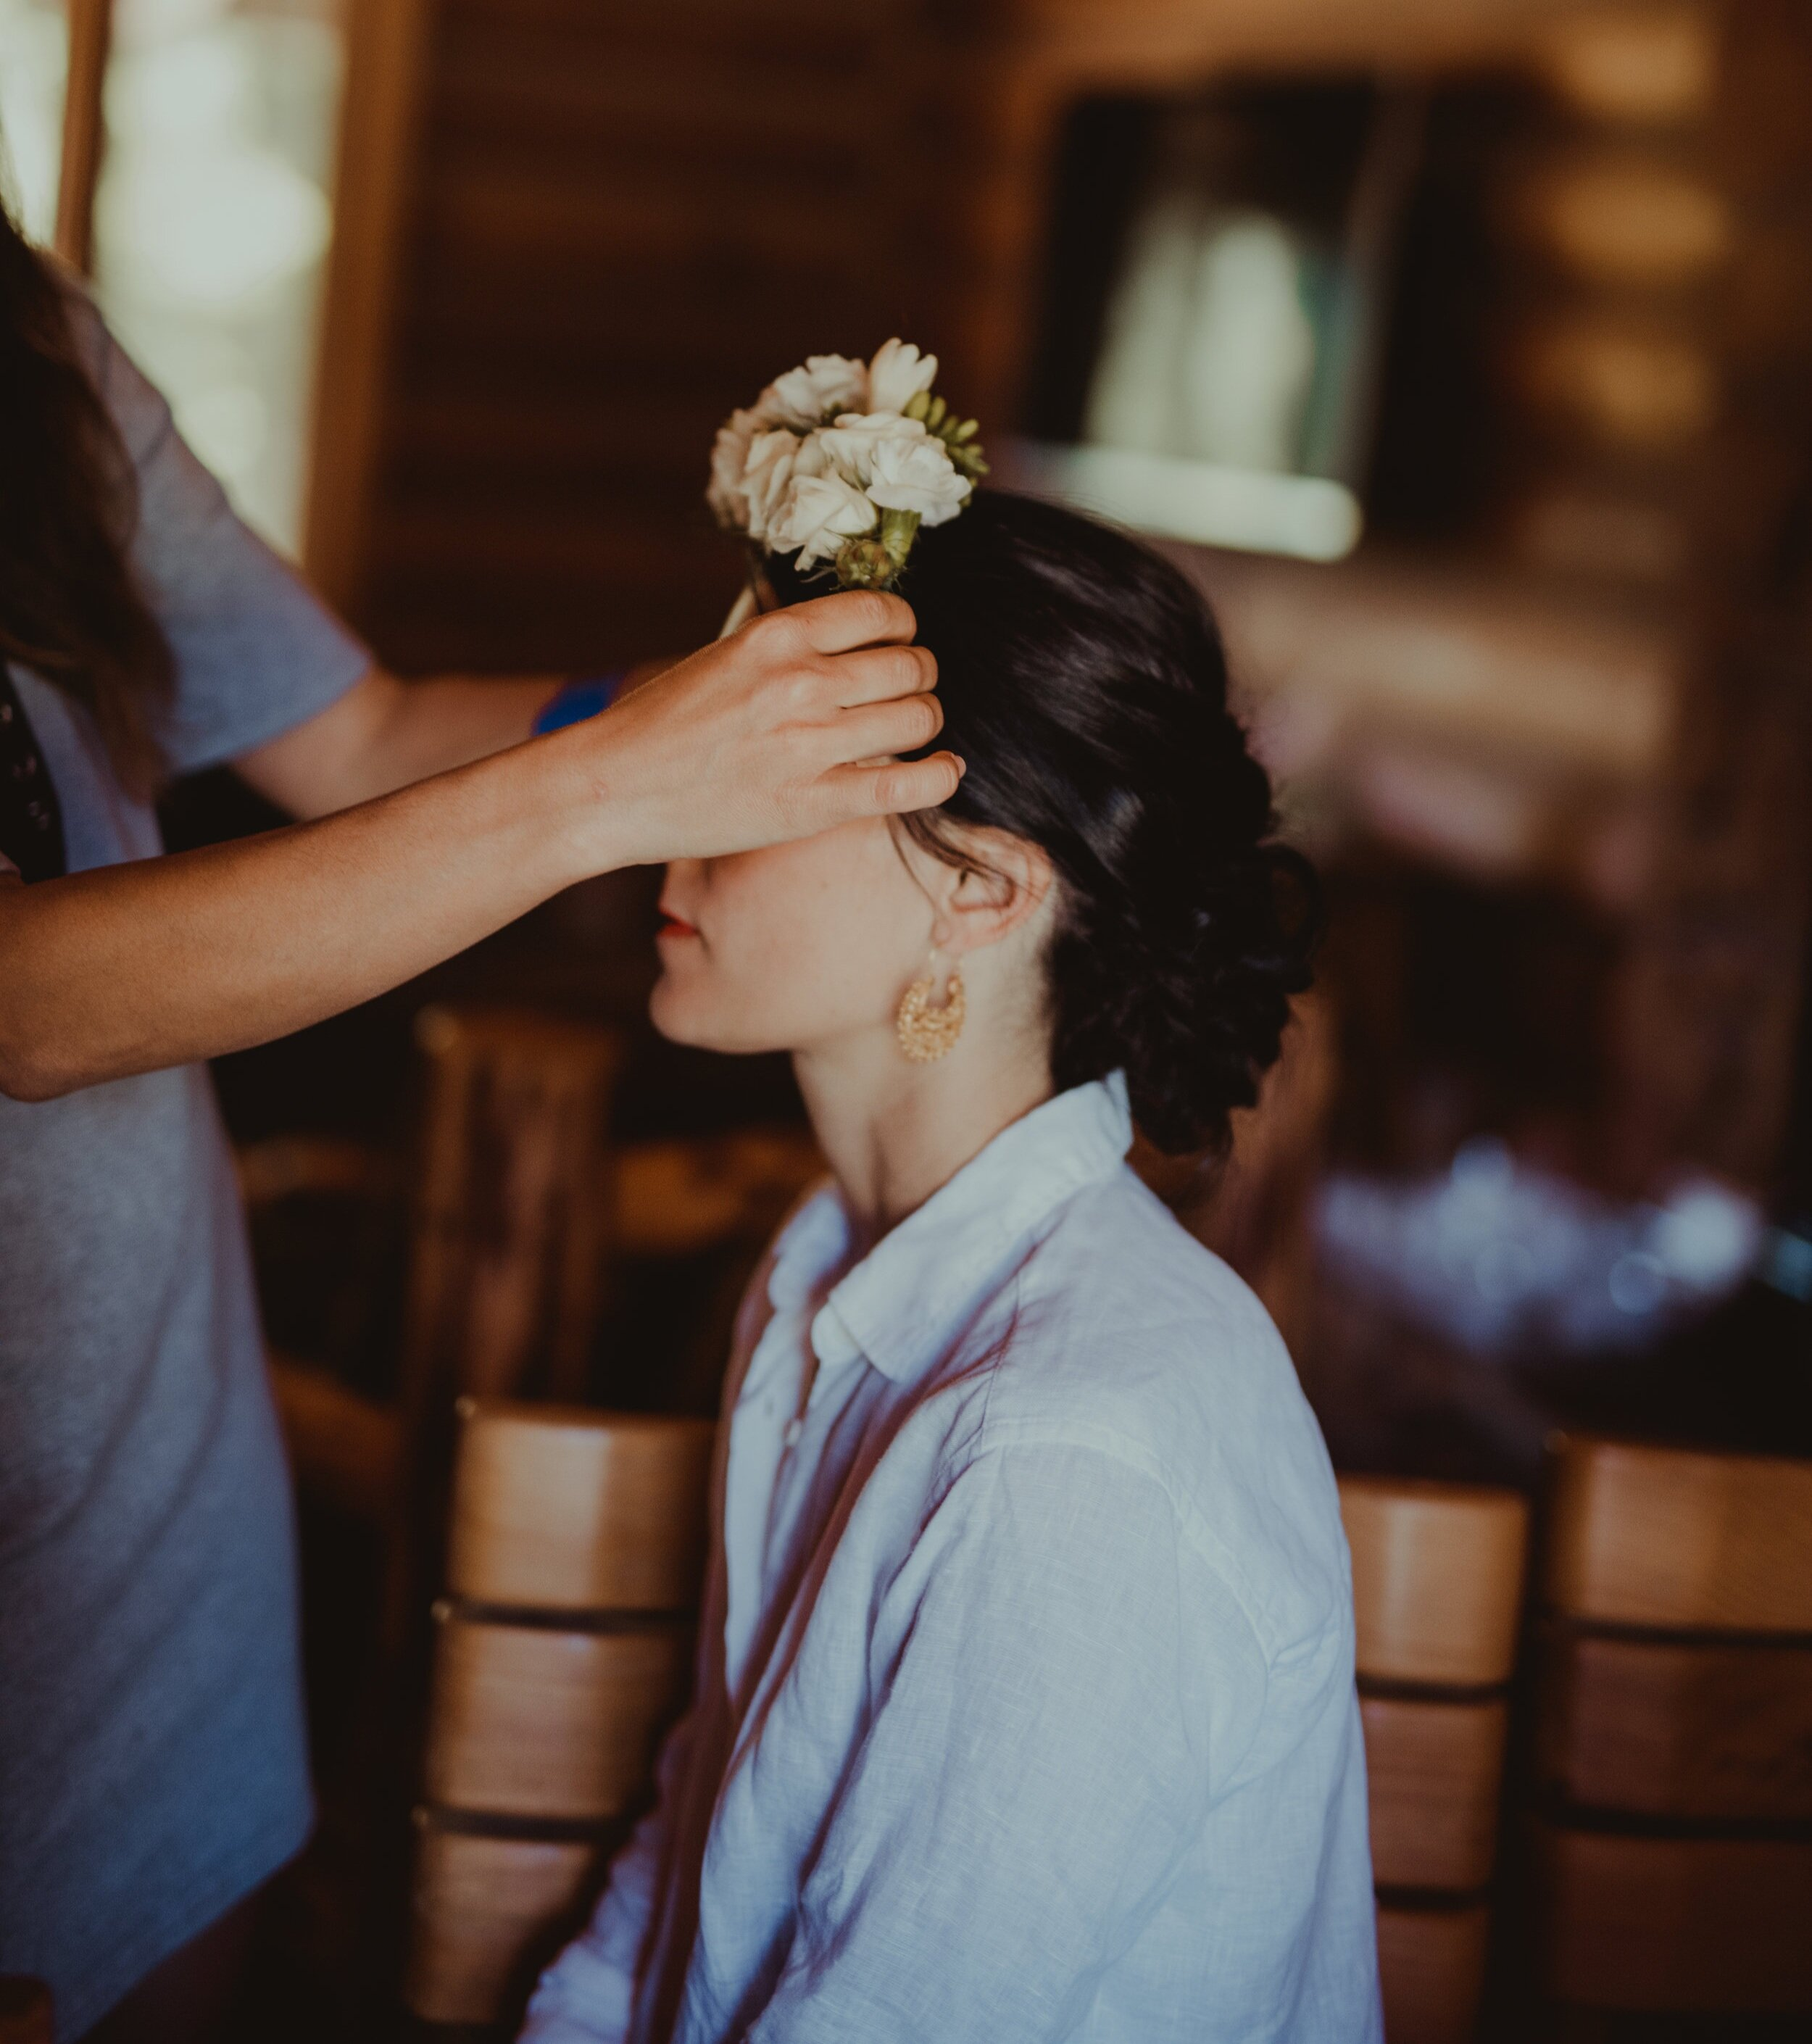 Bridal Hairstyle - We will meet on location at your wedding venue, prepared and fully equipped to transform your hair and makeup into the beautiful wedding look you have dreamed of.Services include travel within 10 miles of Hood River.